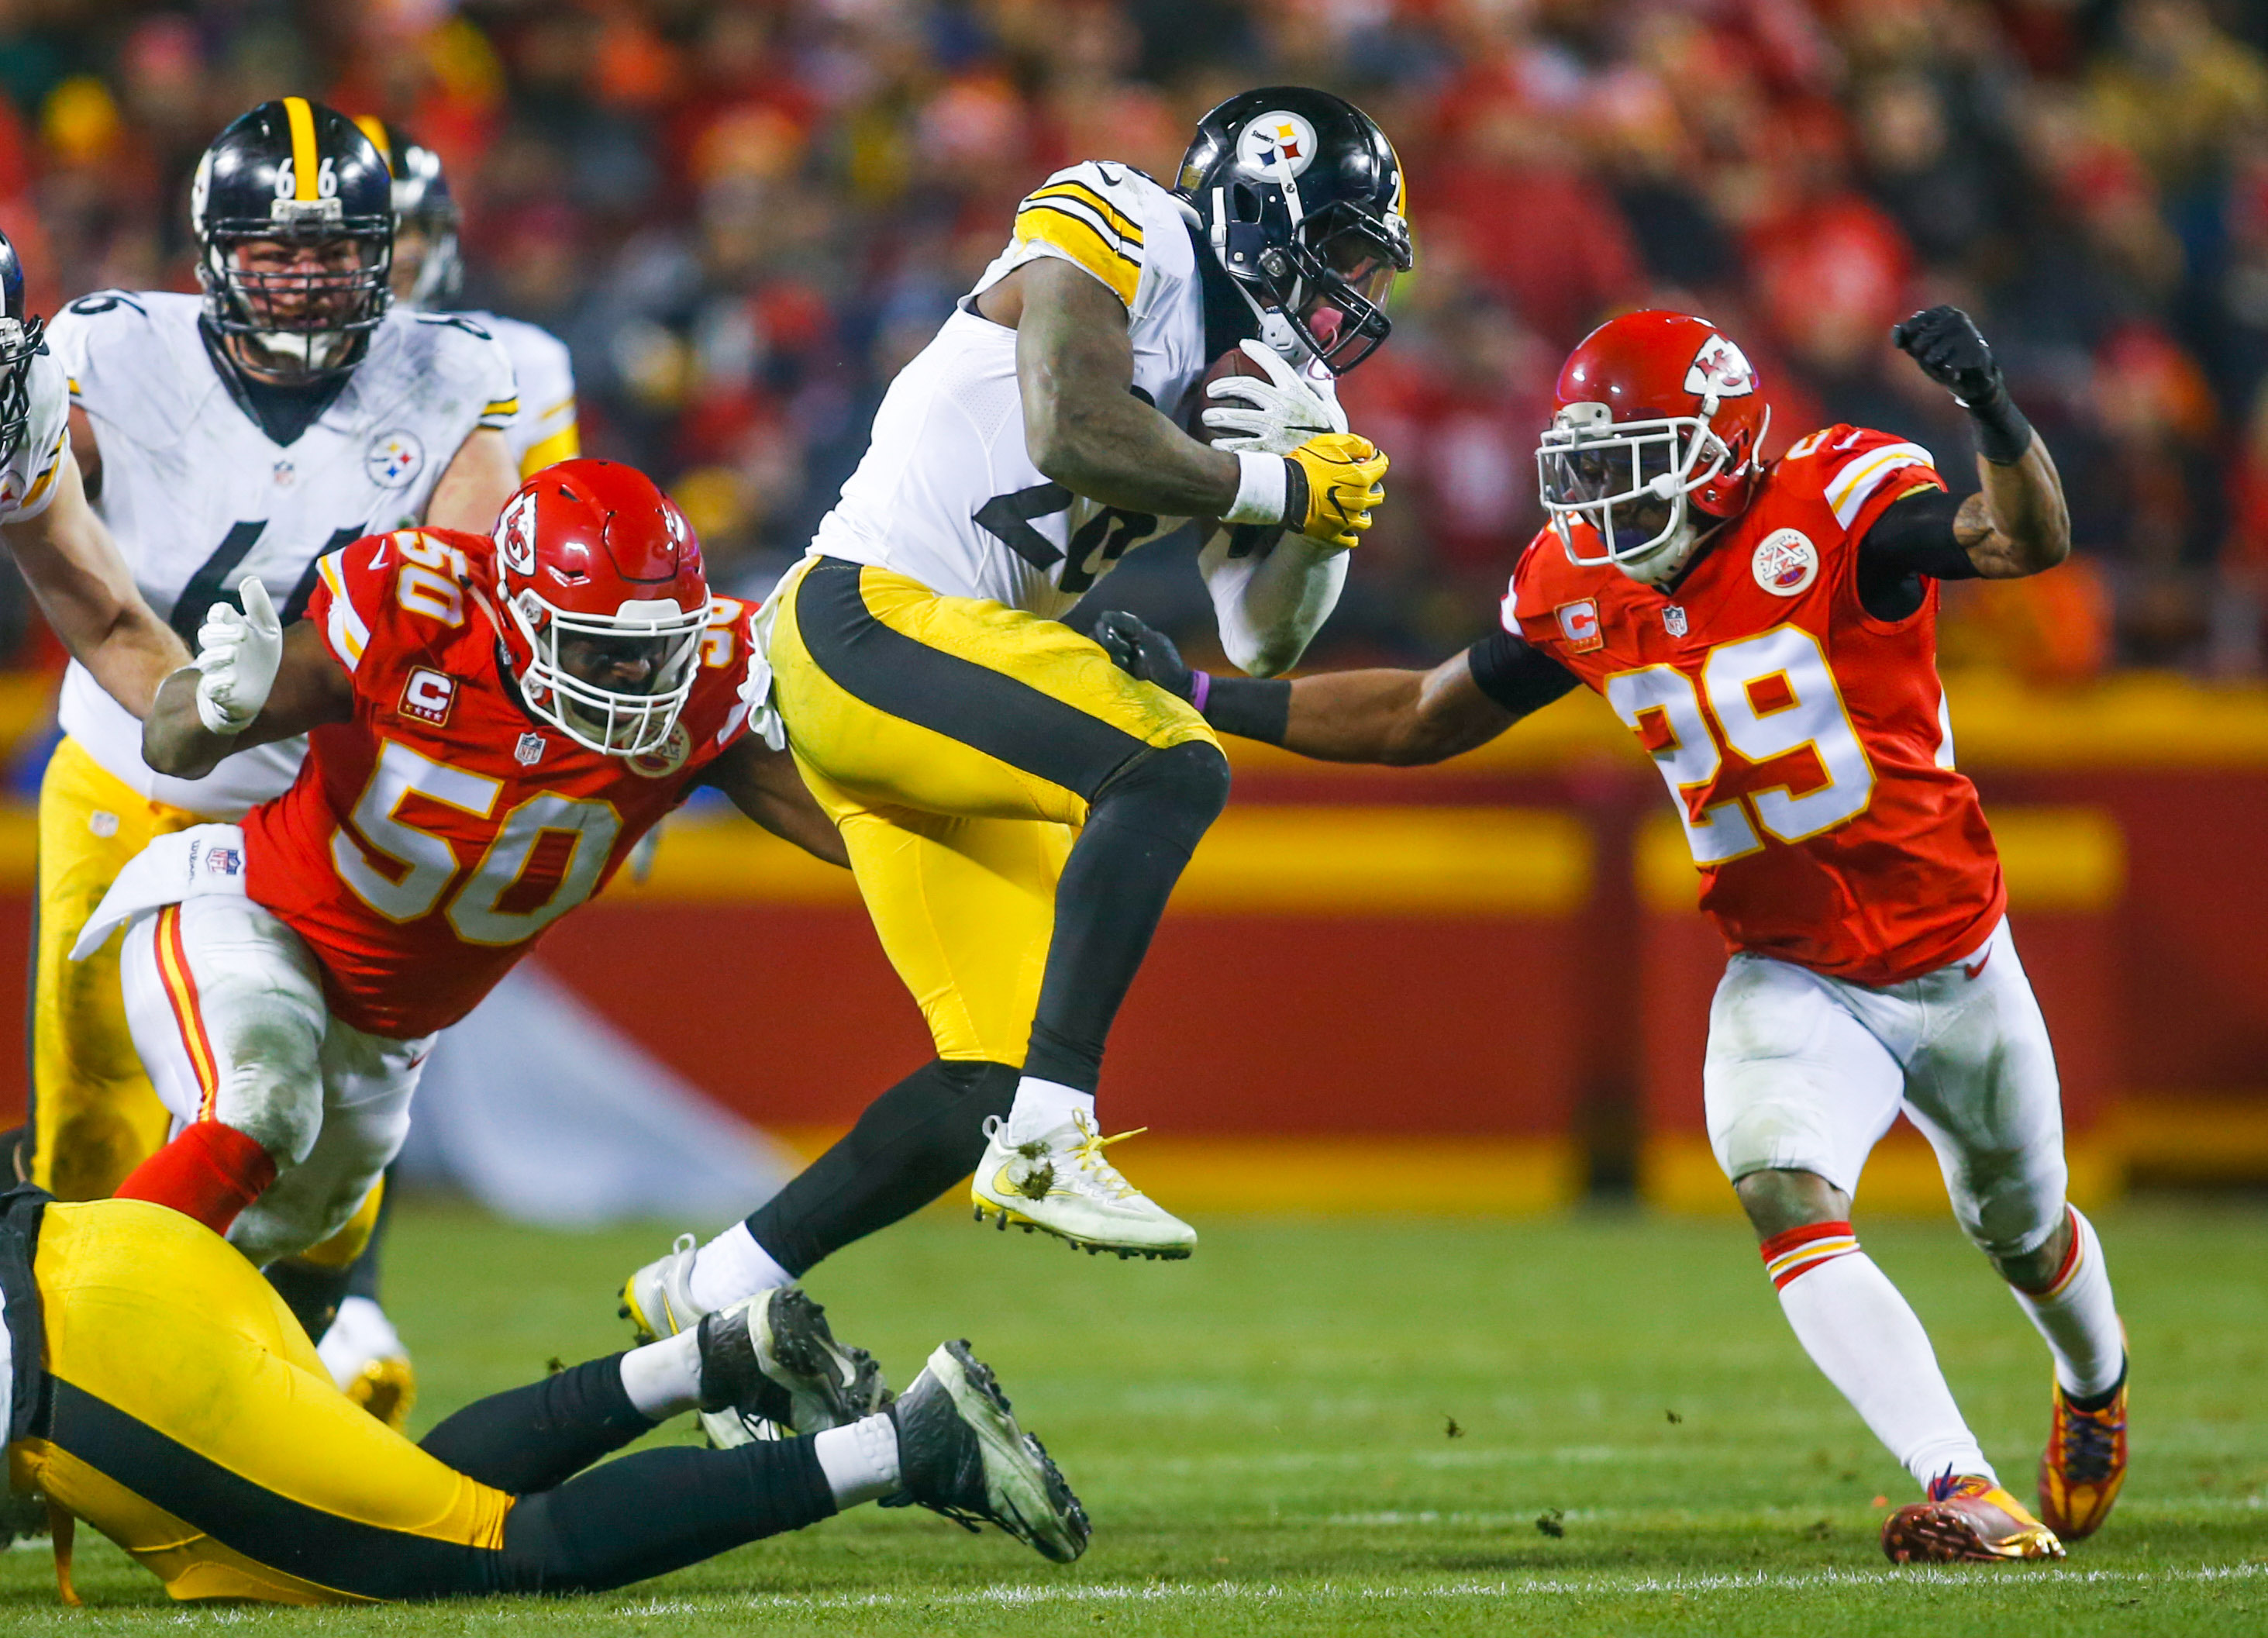 9830463-nfl-afc-divisional-pittsburgh-steelers-at-kansas-city-chiefs